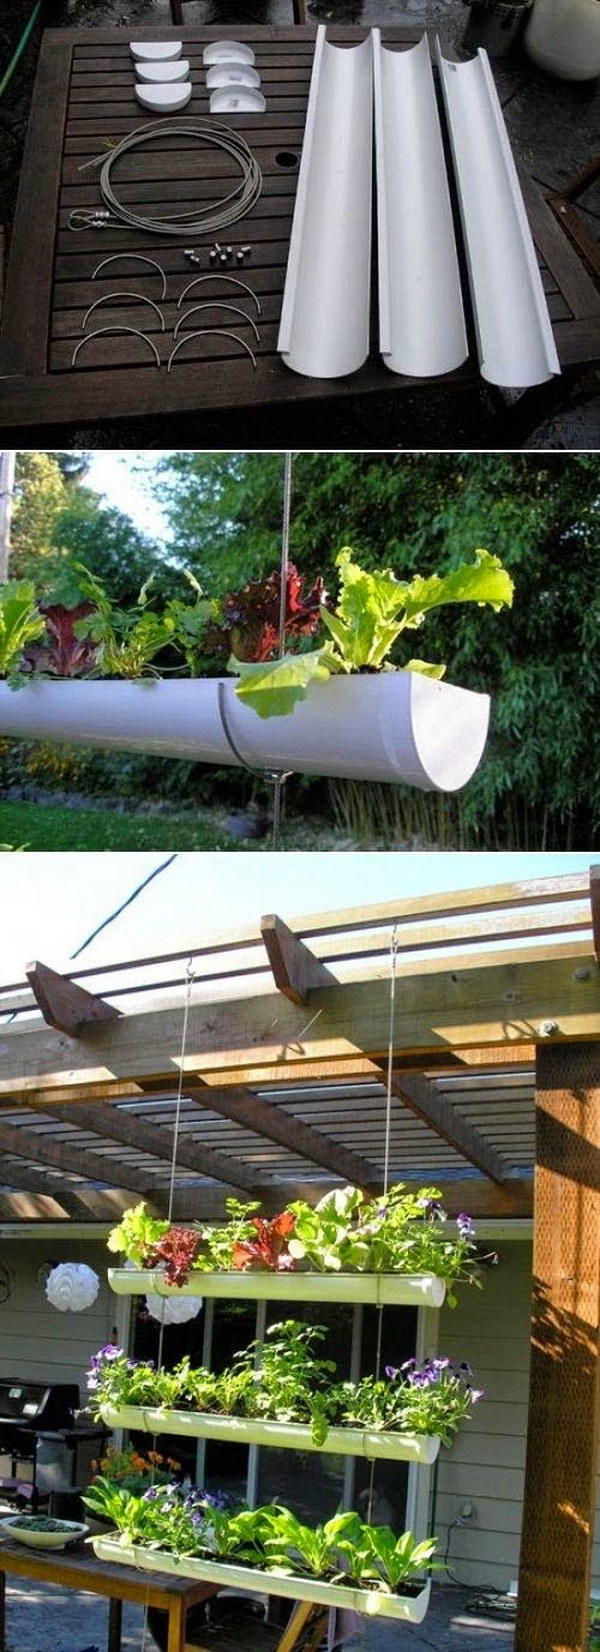 DIY Outdoor Vertical Garden Using Pvc Pipe